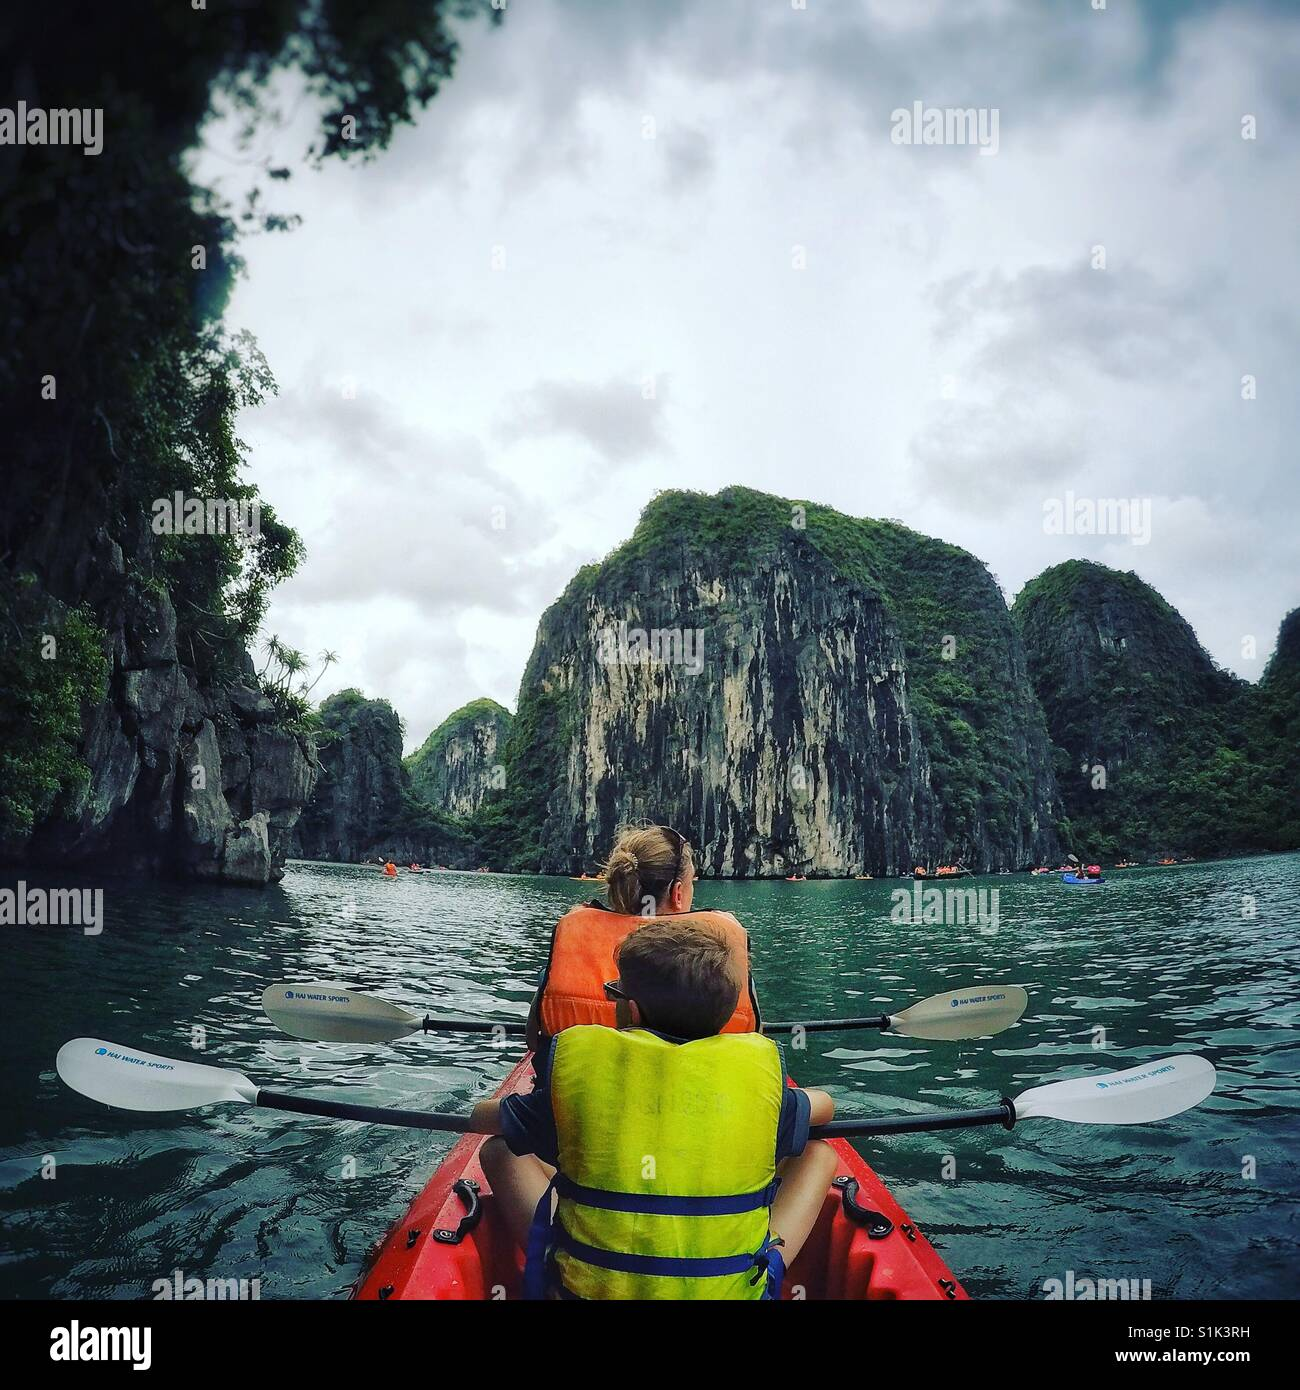 A family of an adult and child kayaking in the emerald waters of the Halong Bay in Vietnam. Limestone peaks topped Stock Photo